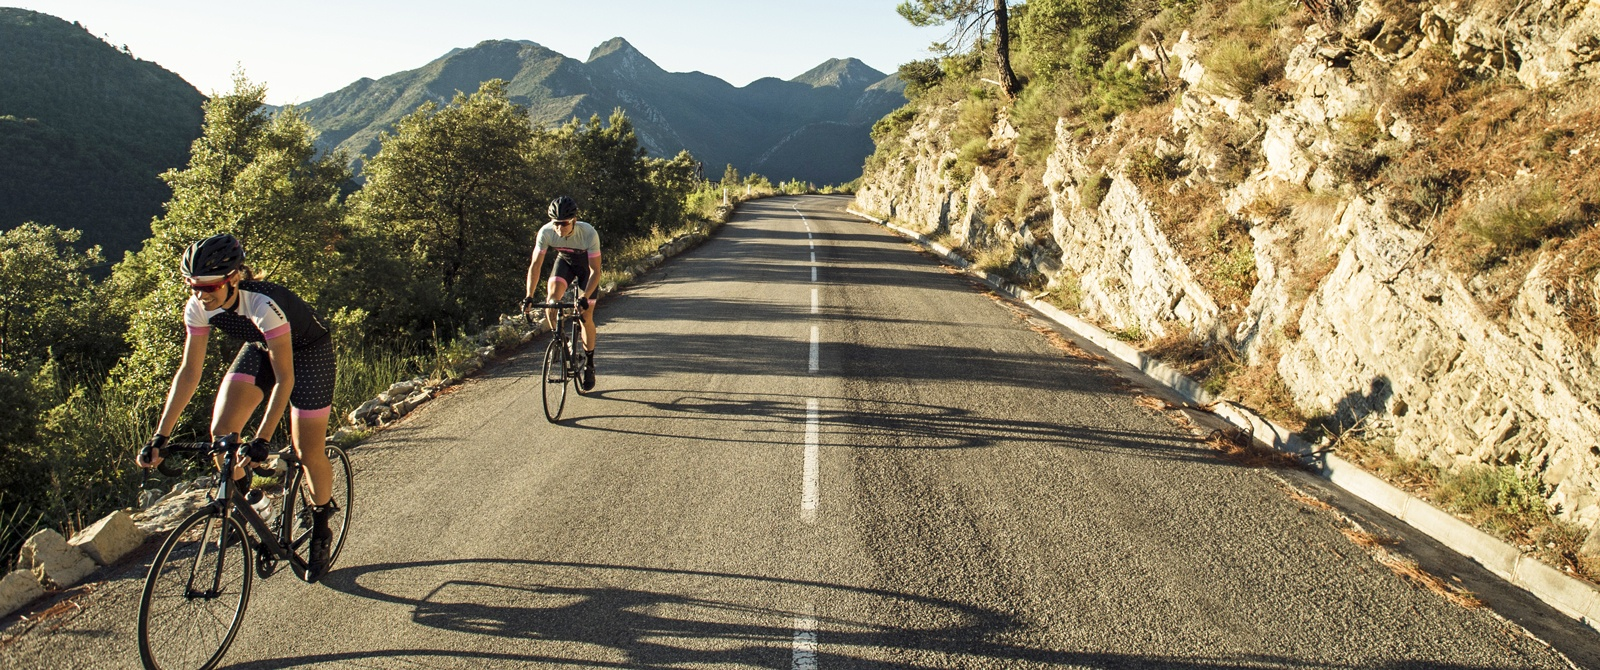 Ride Camp Bike Tours - Training Vacations for Cyclists  359376e7d